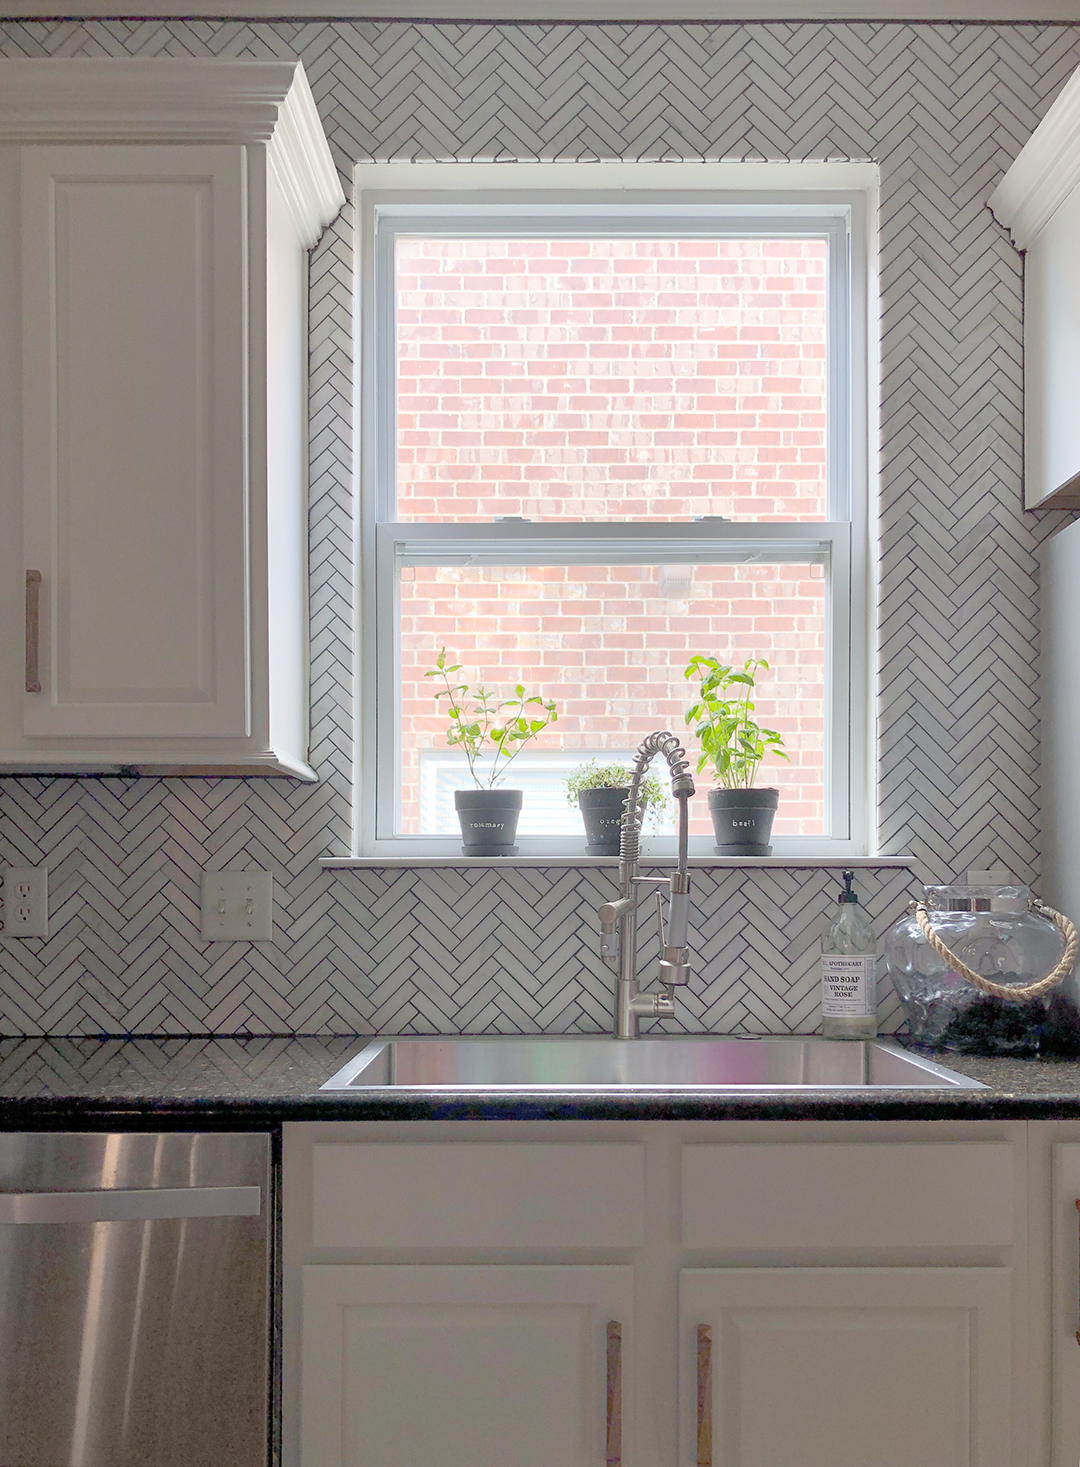 Sarah Miller Kitchen shot of sink with potted herbs, marble herringbone backsplash and dark stone counters